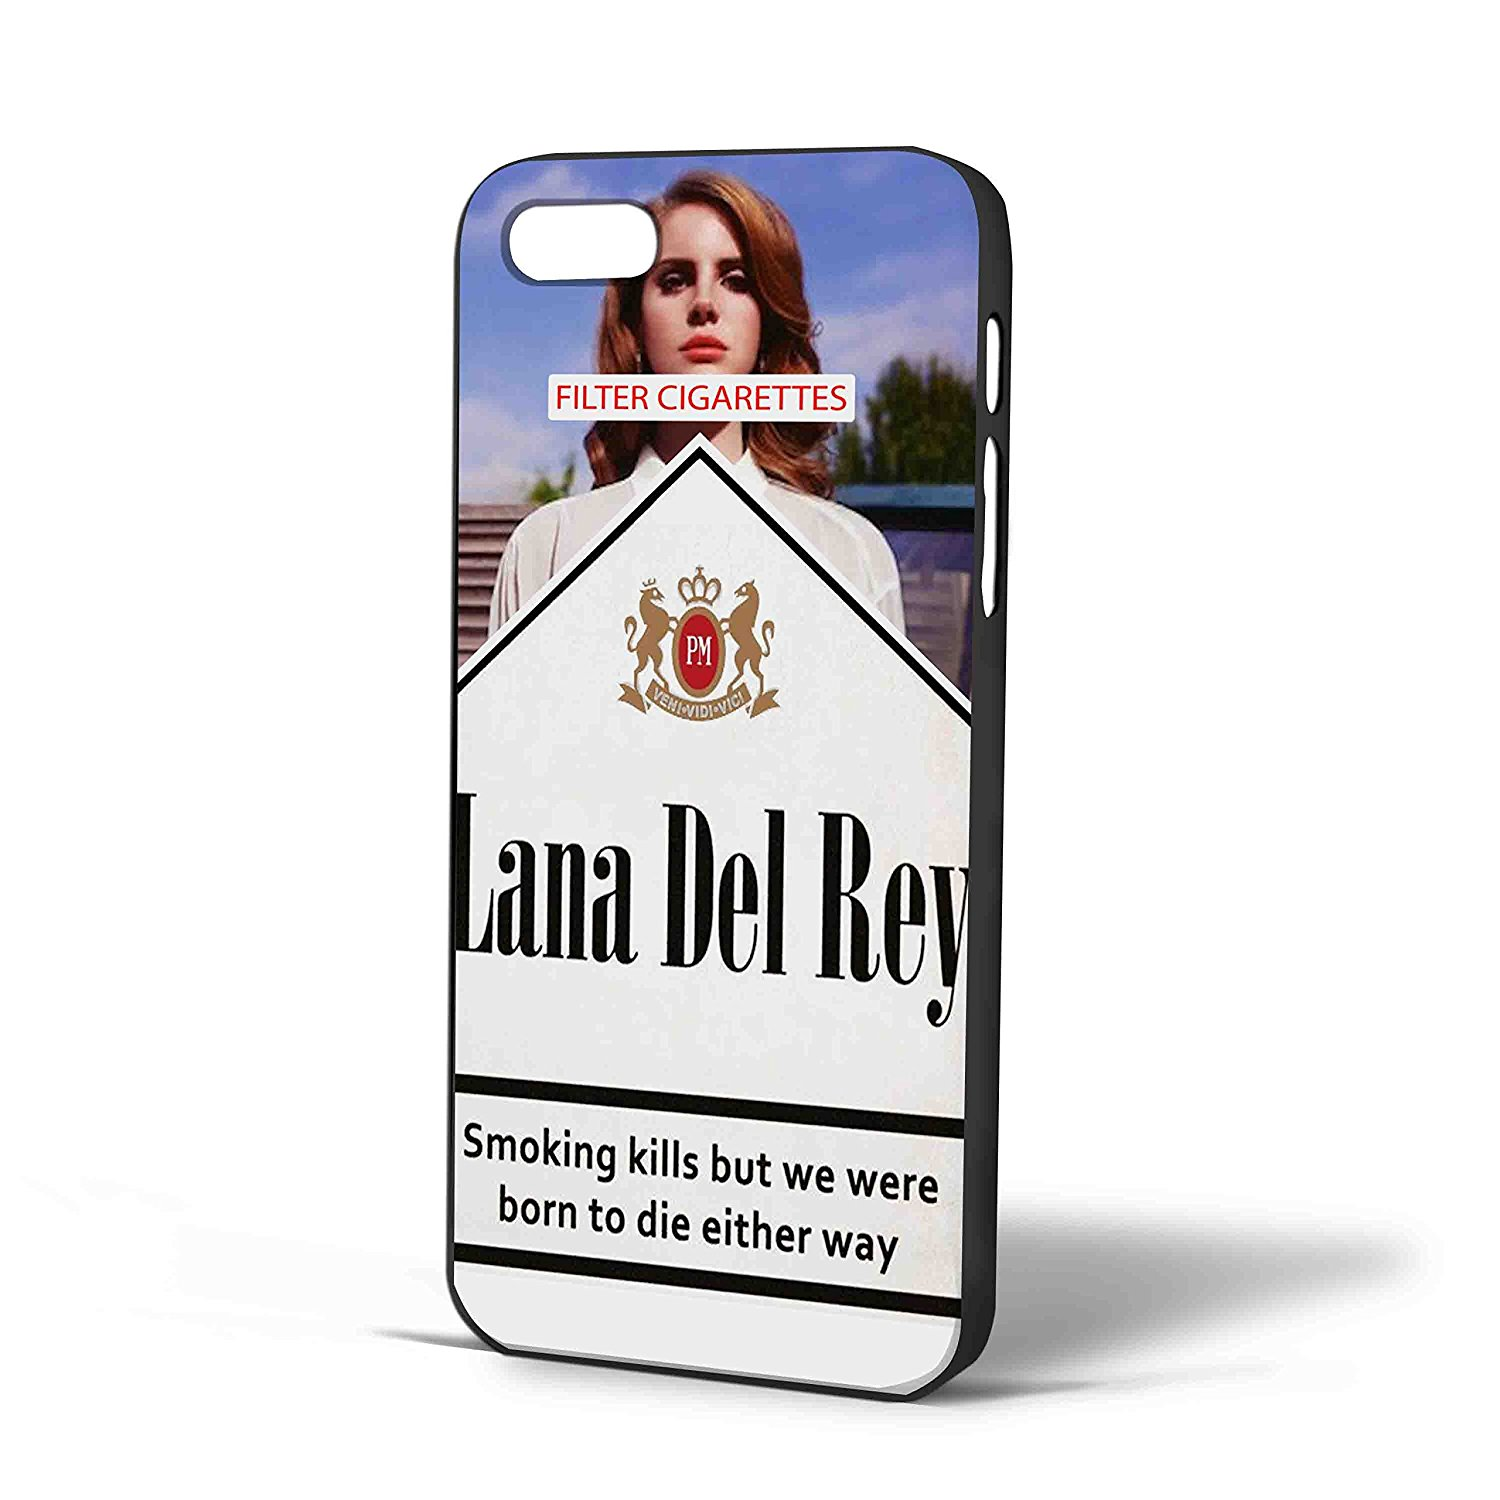 Ganma Lana Del Rey Cigarettes Case For iPhone Case (Case For iPhone 6 Plus White)